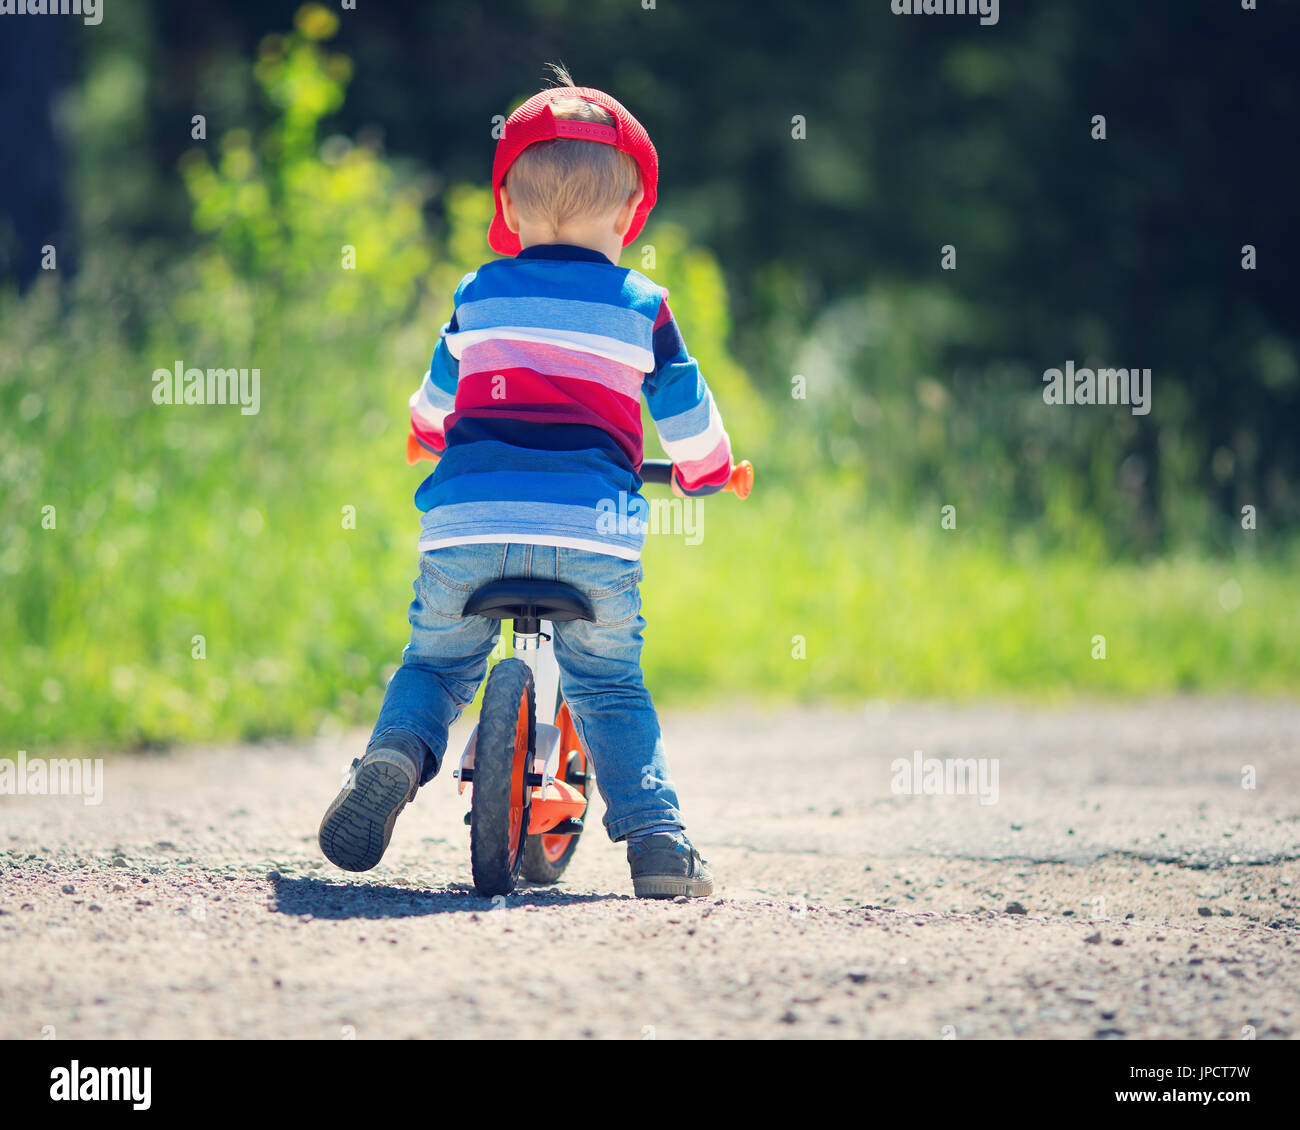 children on a bicycles - Stock Image